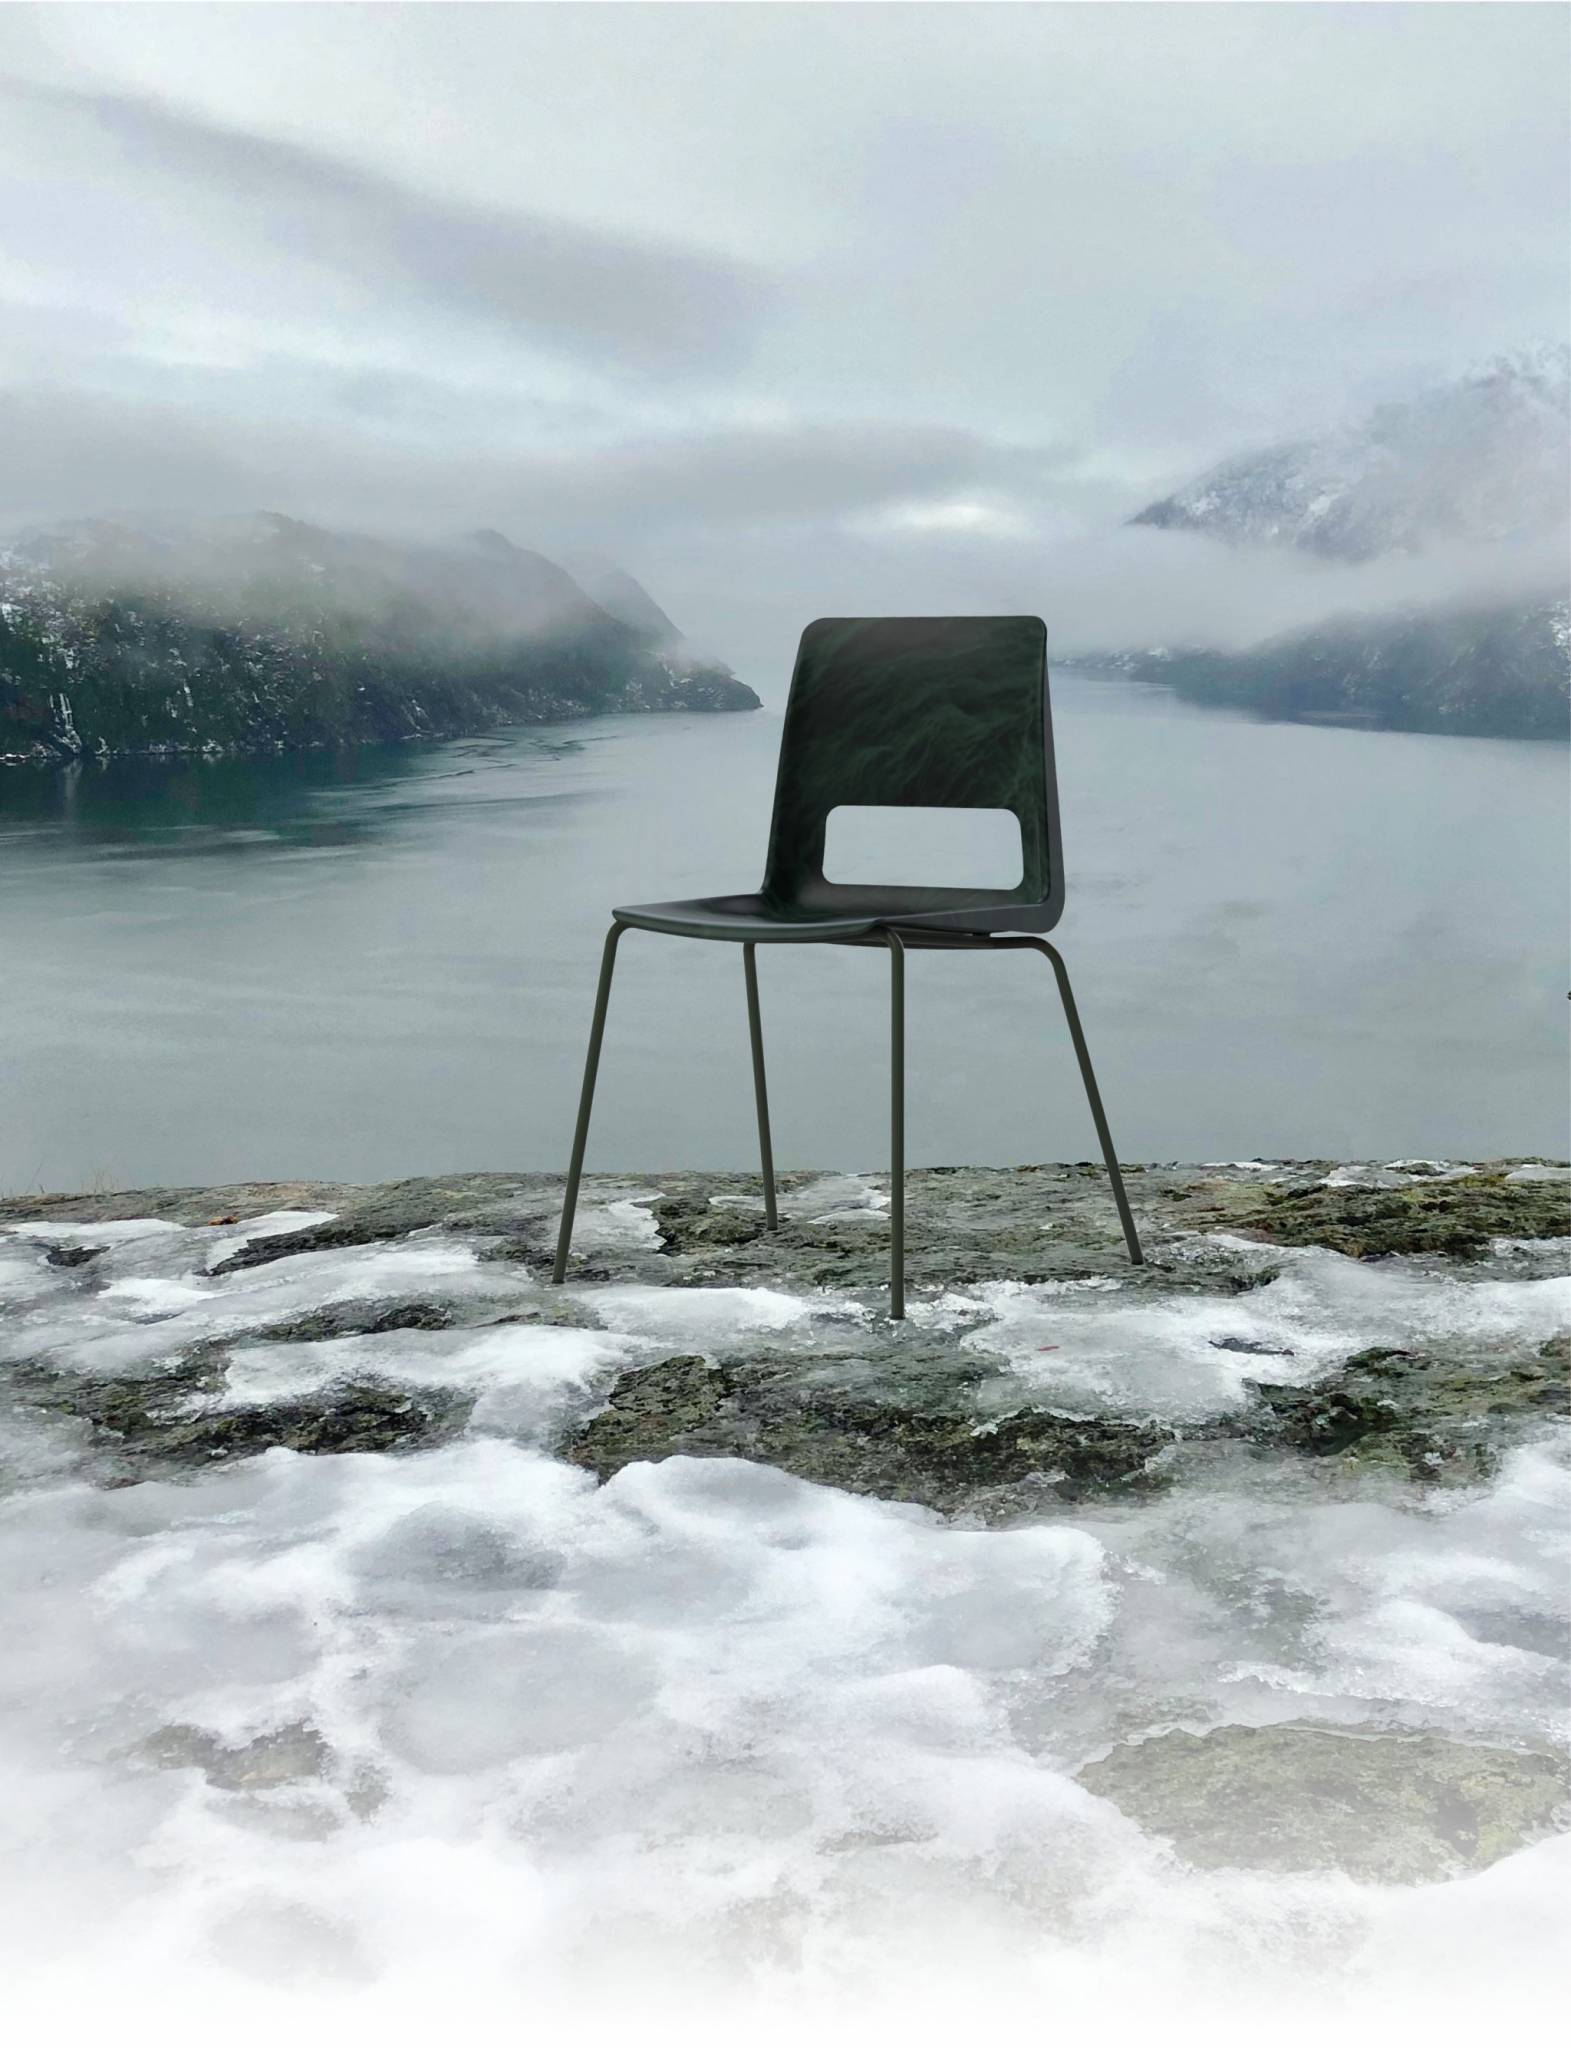 Image: Nordic Comfort Products AS